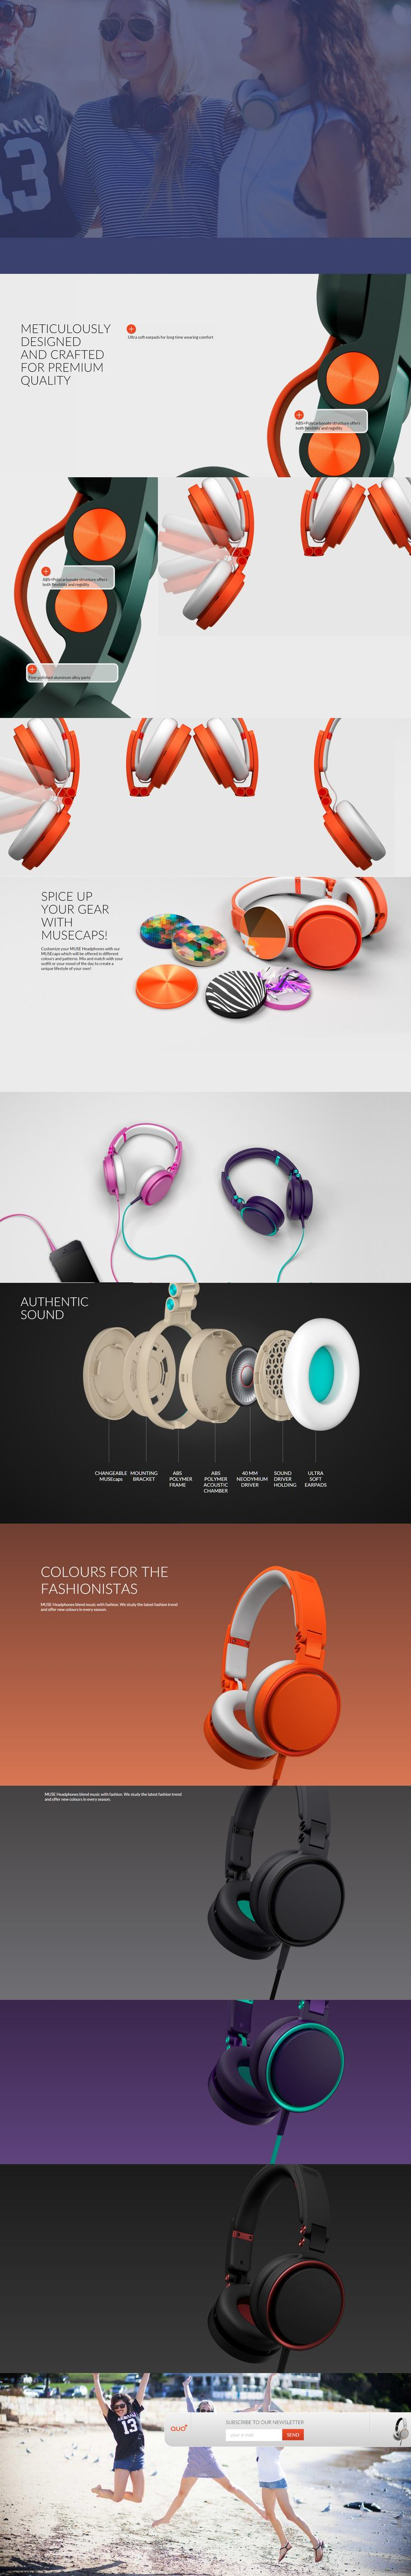 "The QUO+ headset page takes you on a wild, maze-like journey through their site with vertical and horizontal scrolling – along with an interesting section where you ""scroll"" through their product colors too."